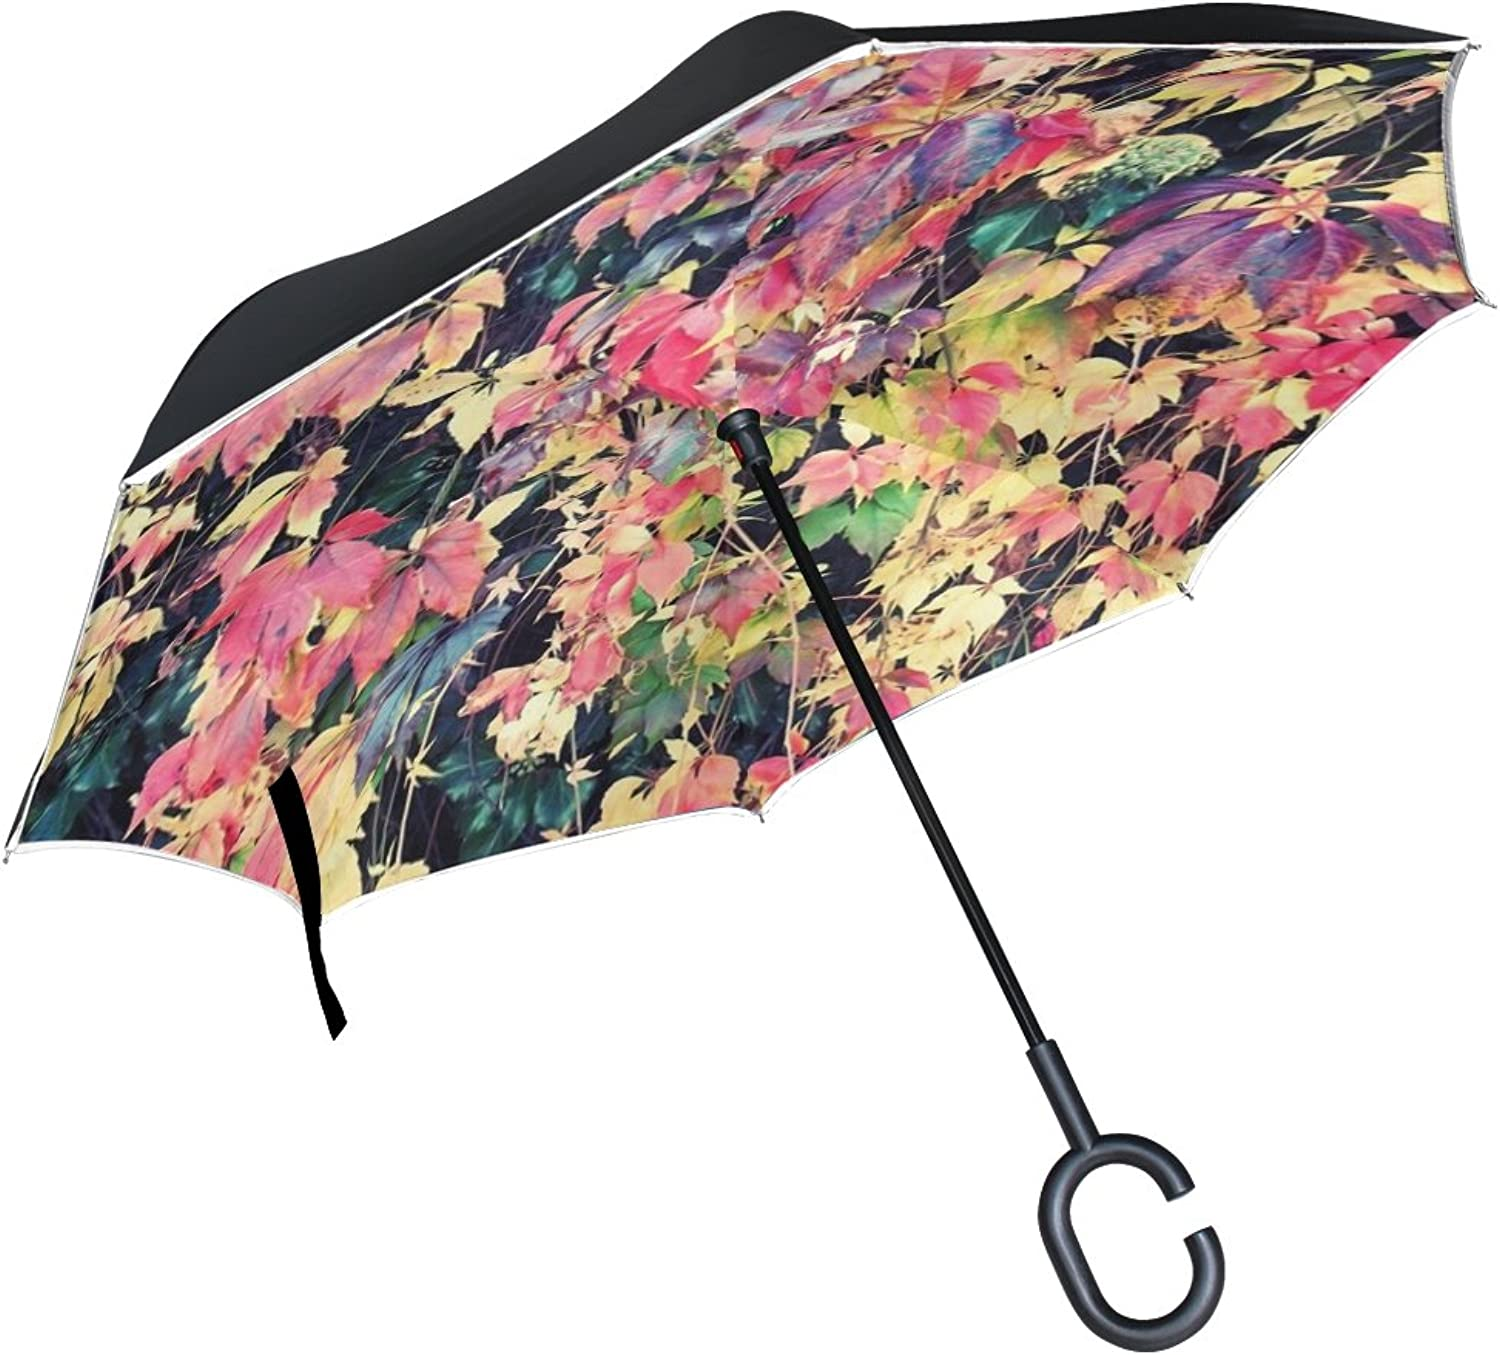 Double Layer Ingreened Autumn Leaves colorful color Fall Foliage Umbrellas Reverse Folding Umbrella Windproof Uv Predection Big Straight Umbrella for Car Rain Outdoor with CShaped Handle